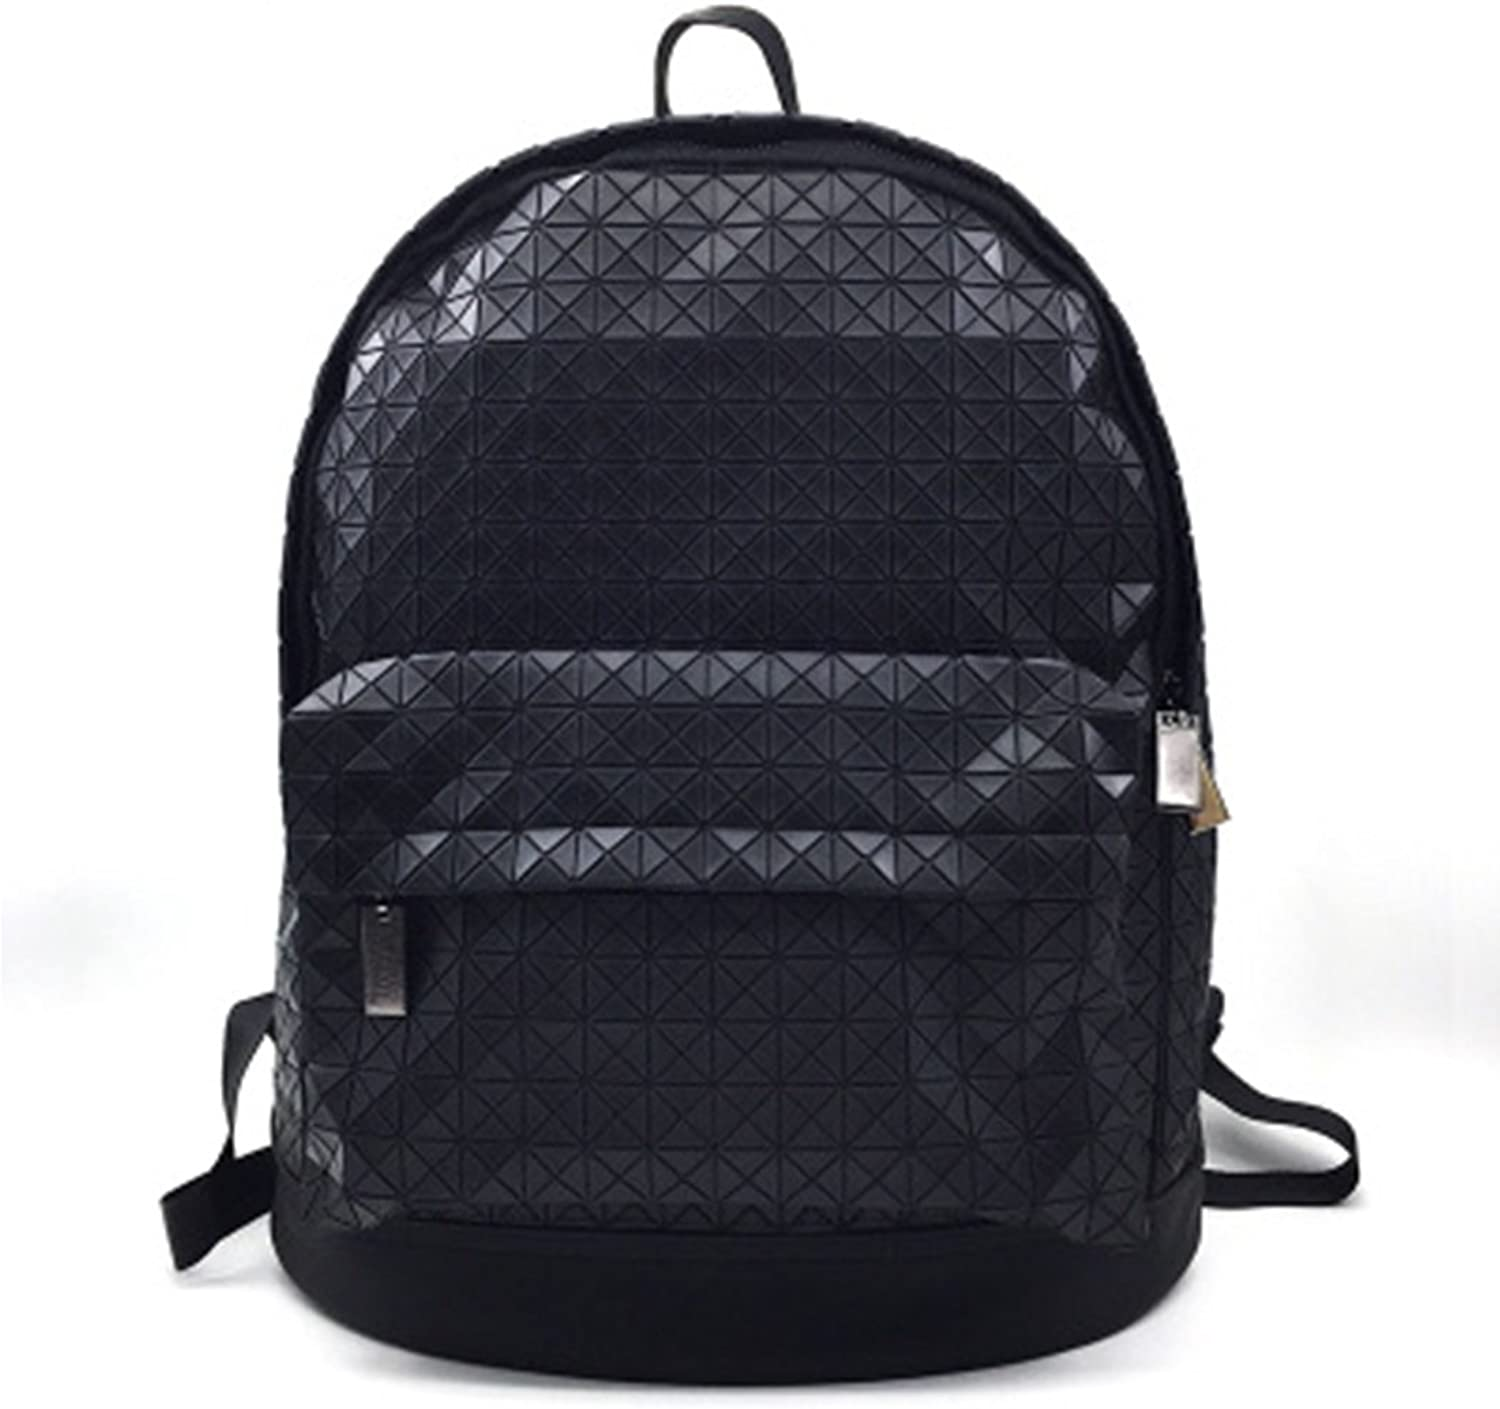 RYRYBH Unisex Backpack Casual Backpack Diamond Shape Computer Backpack Large Capacity Laser Bag for Work, School, Daily Use  13.4 (L) X 7.1 (W) X 7.5 (H) Backpack (color   Black, Size   OneSize)